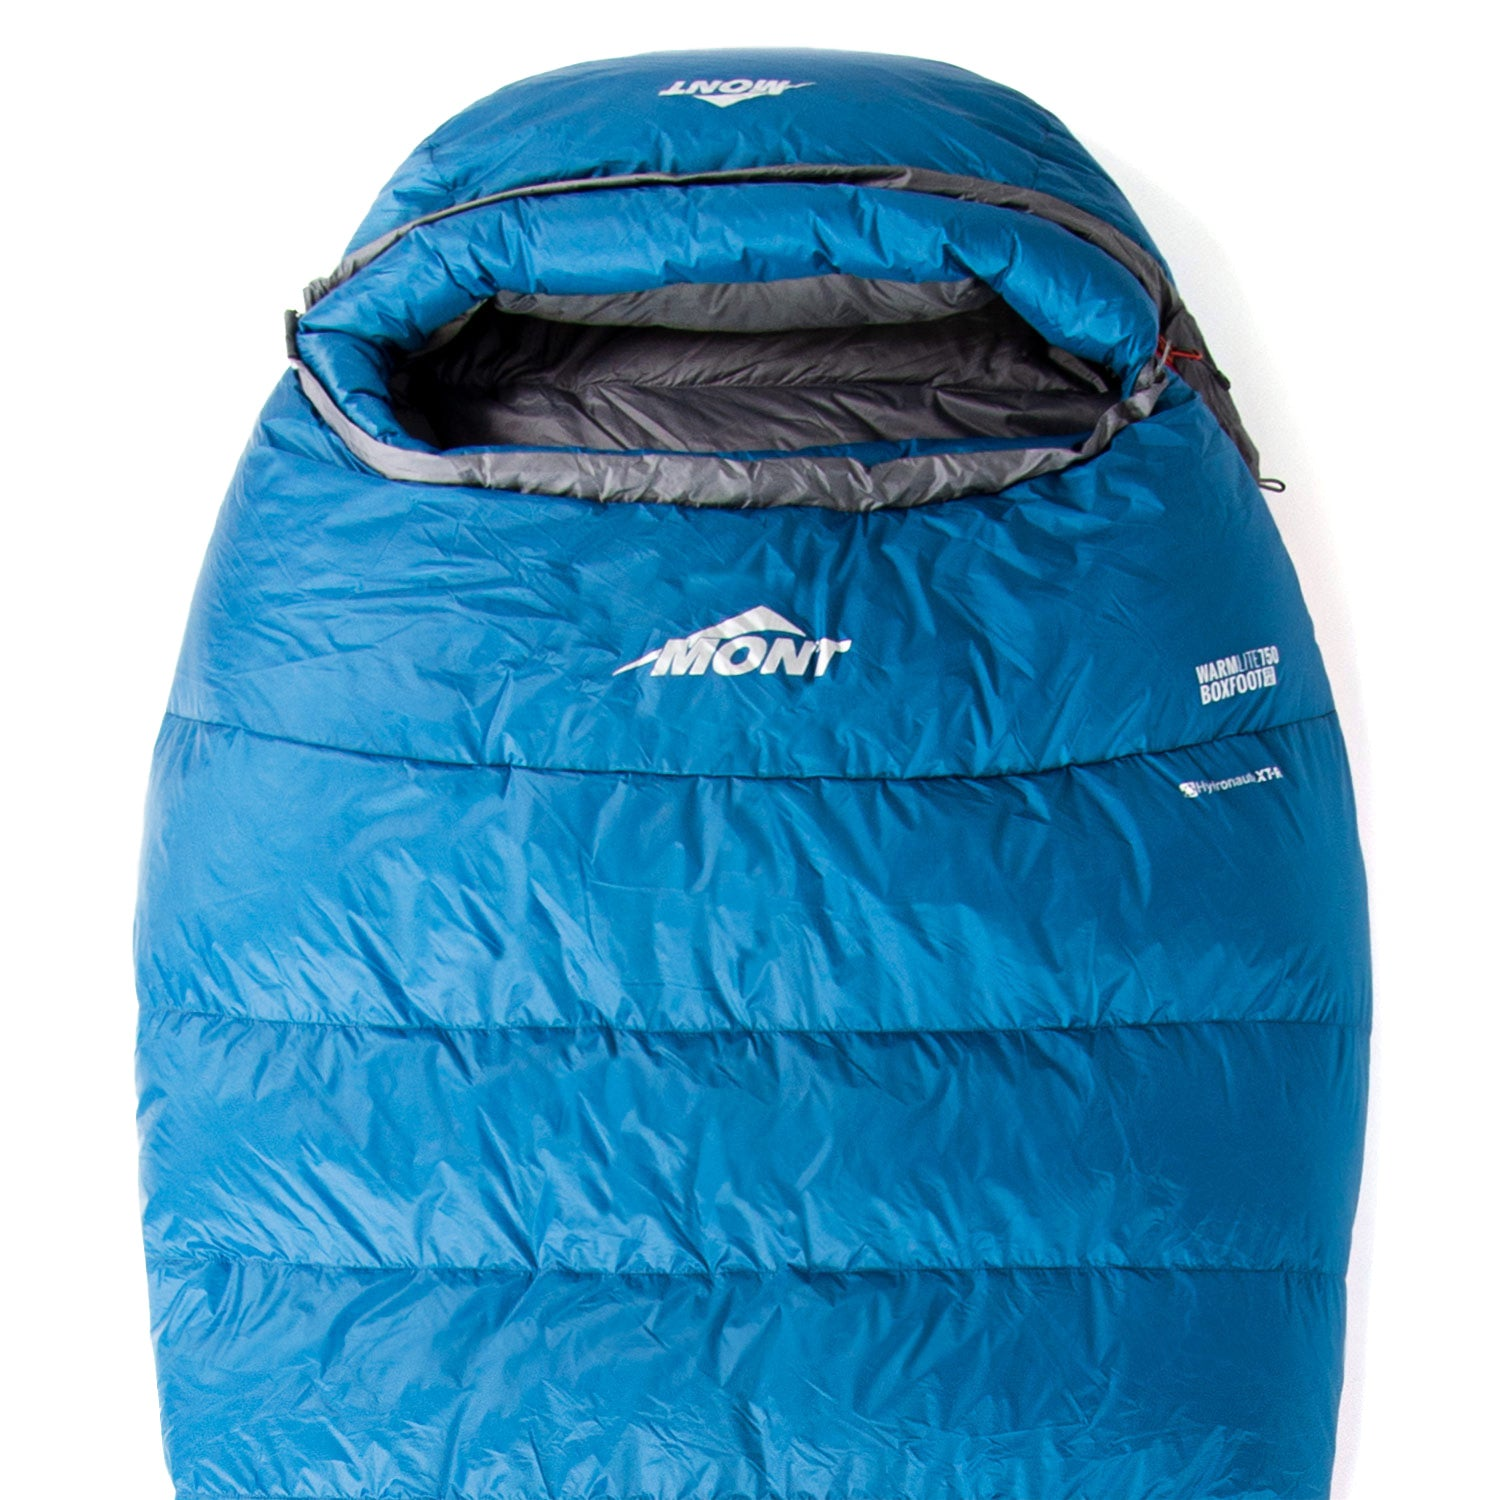 Warmlite XT-R Boxfoot 750 -9 to -14°C Down Sleeping Bag